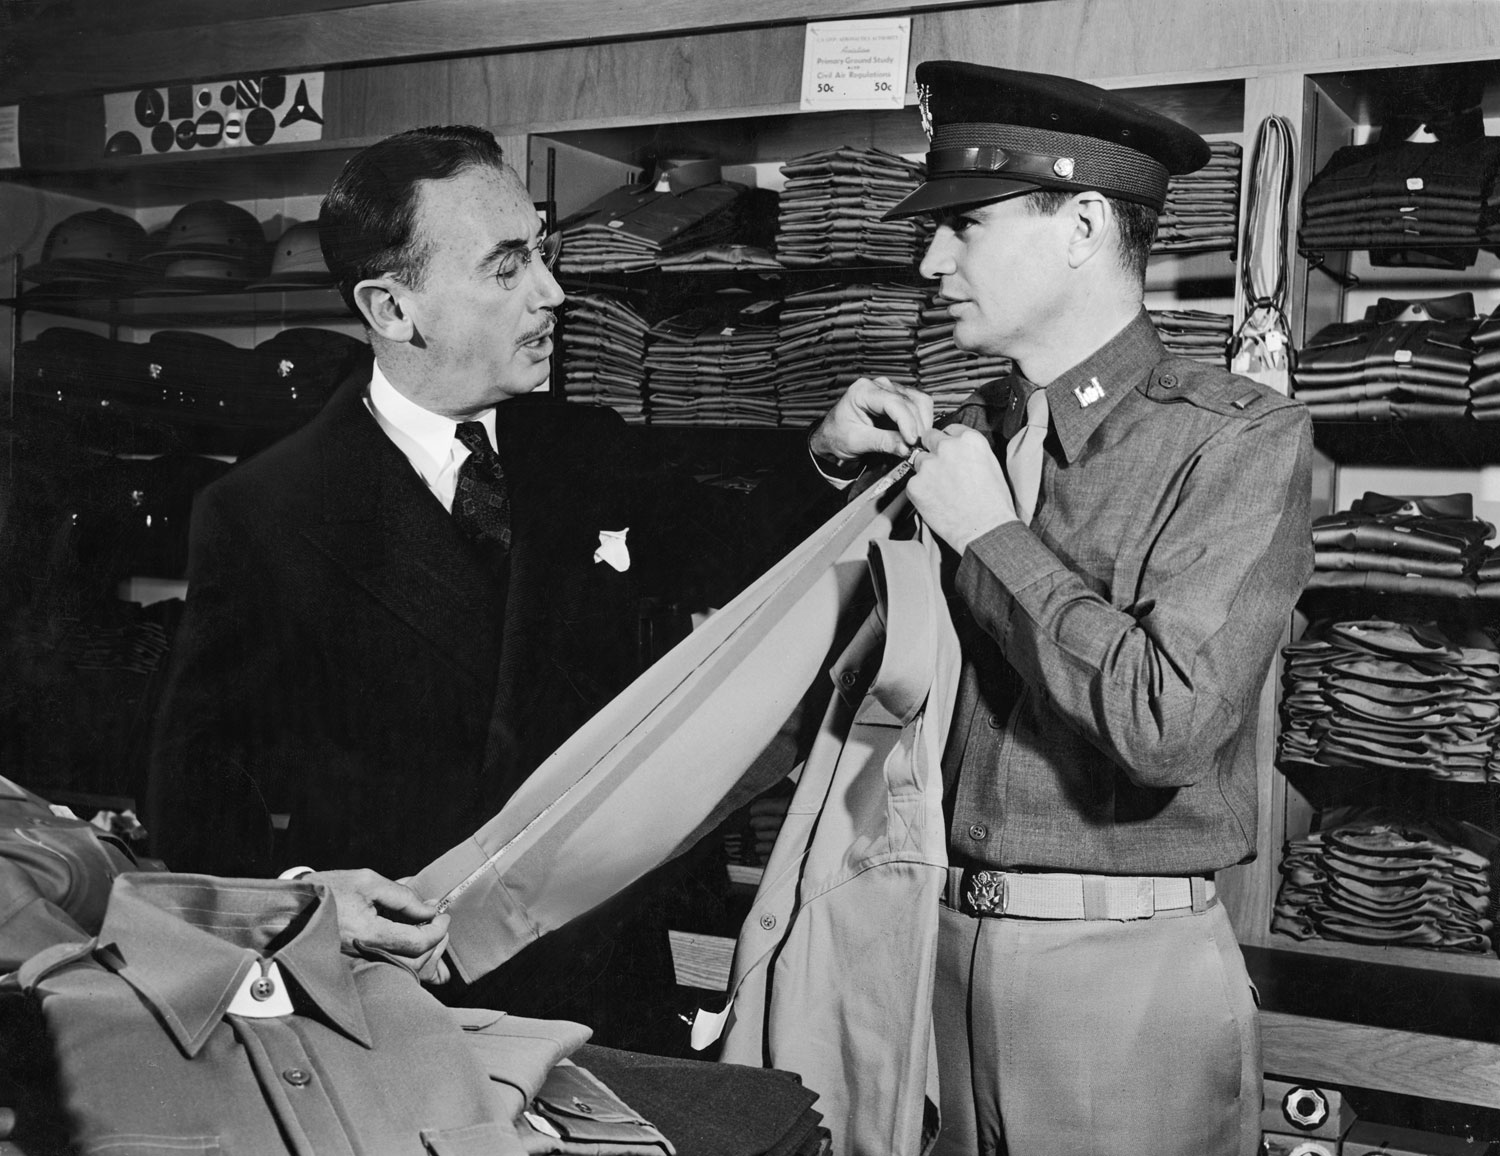 "<strong>Caption from LIFE.</strong> ""A dozen tropical shirts are ordered by a young Army lieutenant in the store of the Zenith haberdasher the next evening just before closing time. But the sleeves are too long and will have to be altered. The lieutenant says: 'If you can't get them done and delivered to my hotel by 9 o'clock Friday night, never mind the order. I won't be able to pay for them if I've gone when they're delivered. Understand?' The haberdasher says he understands. But he muses to himself: 'Tropical shirts. This young fellow must be headed to Australia.'"""